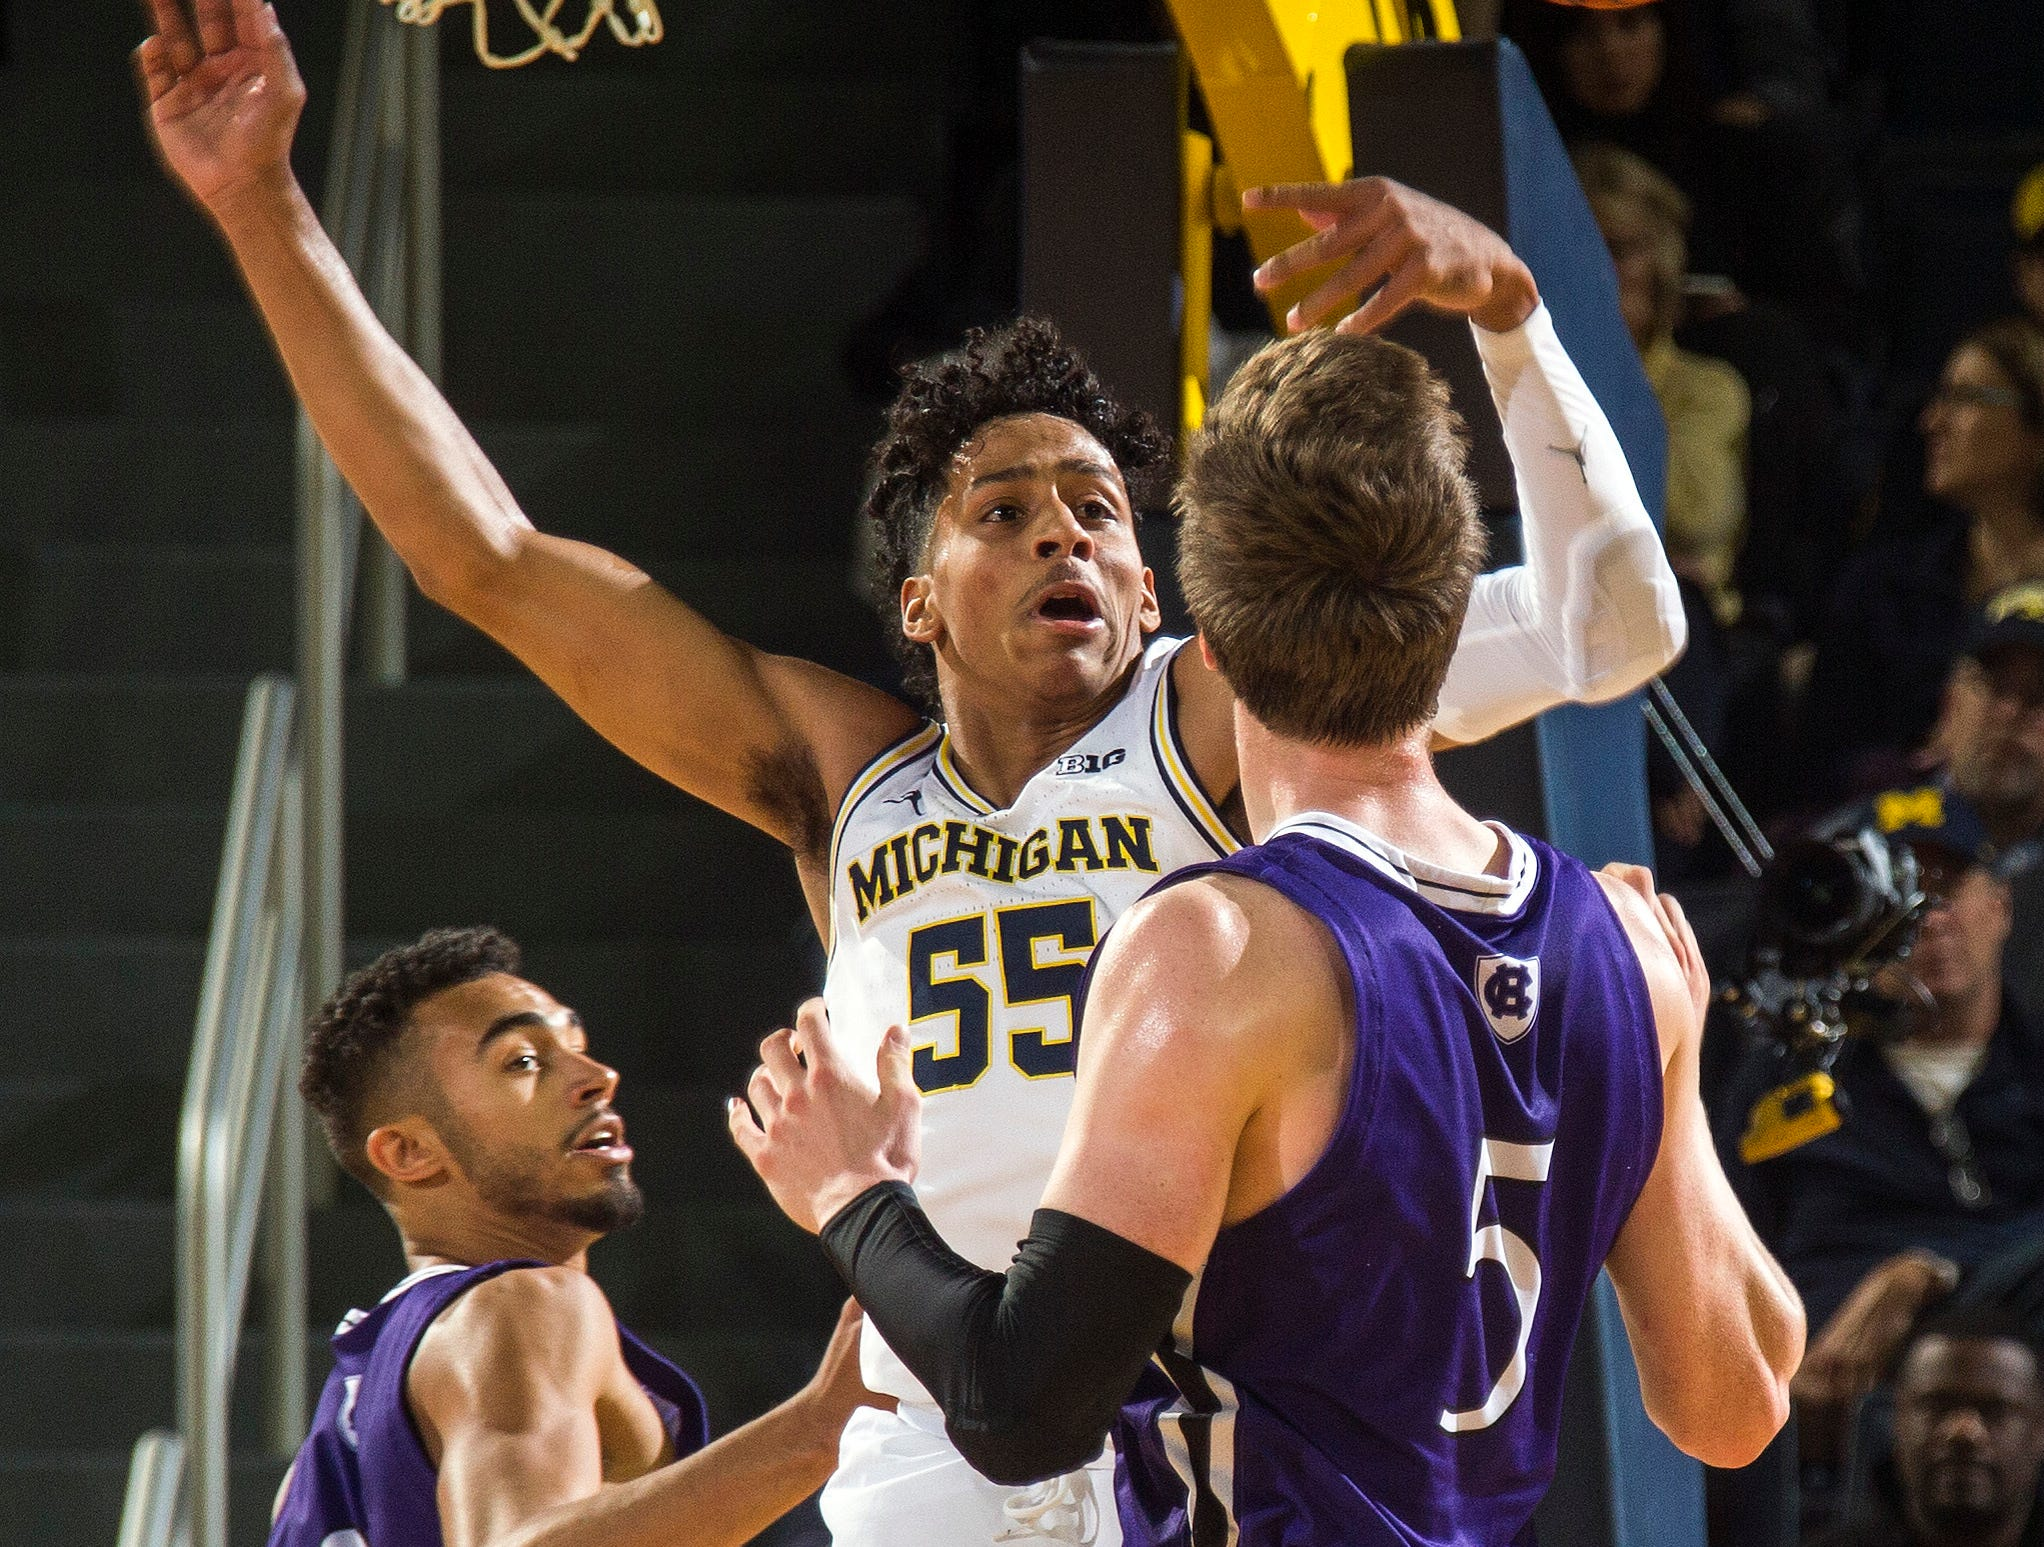 Michigan guard Eli Brooks (55) tries to intercept a pass from Holy Cross forward Connor Niego (5) to guard Kyle Copeland, left, during the first half of an NCAA college basketball game in Ann Arbor, Mich., Saturday, Nov. 10, 2018. (AP Photo/Tony Ding)